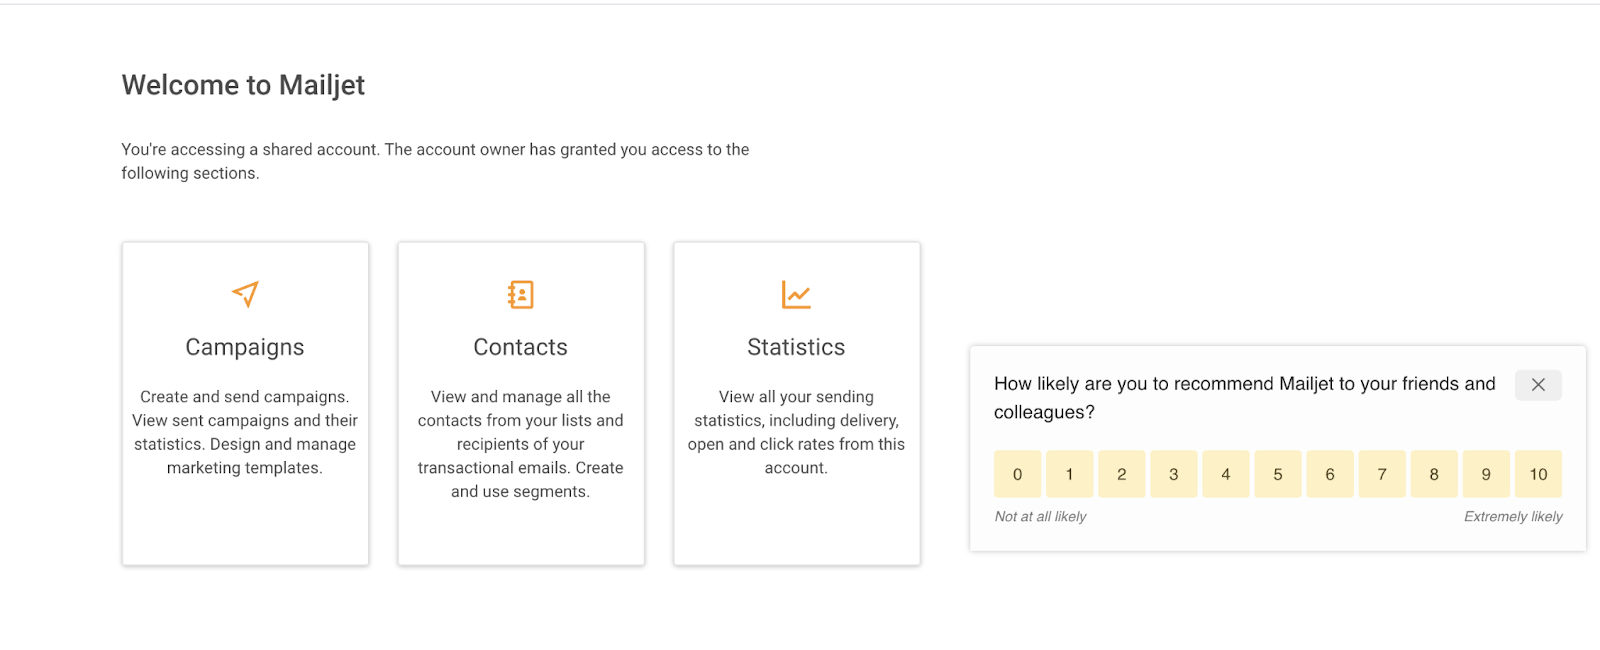 Rating scale for user feedback